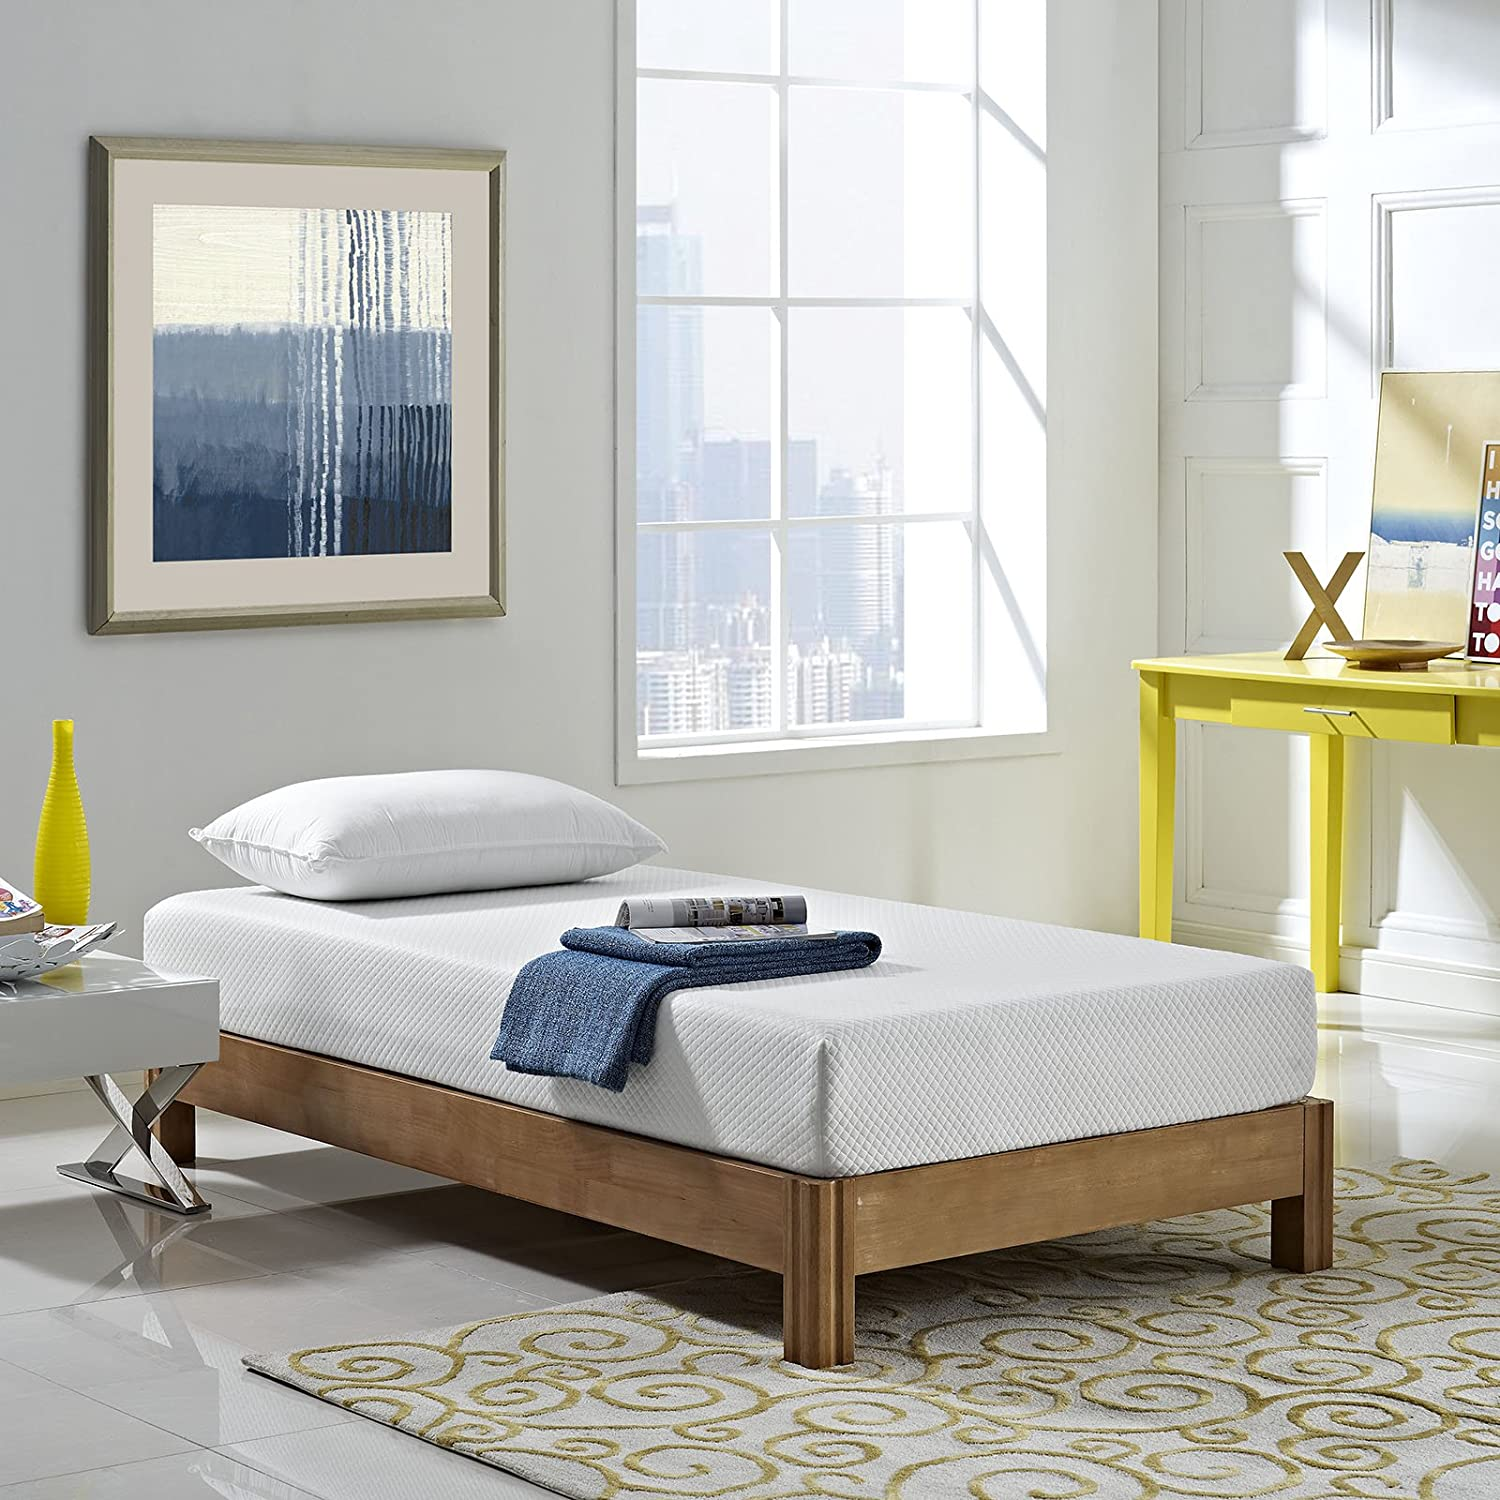 Best Mattress with Ultimate Guide & Reviews for your Bedroom